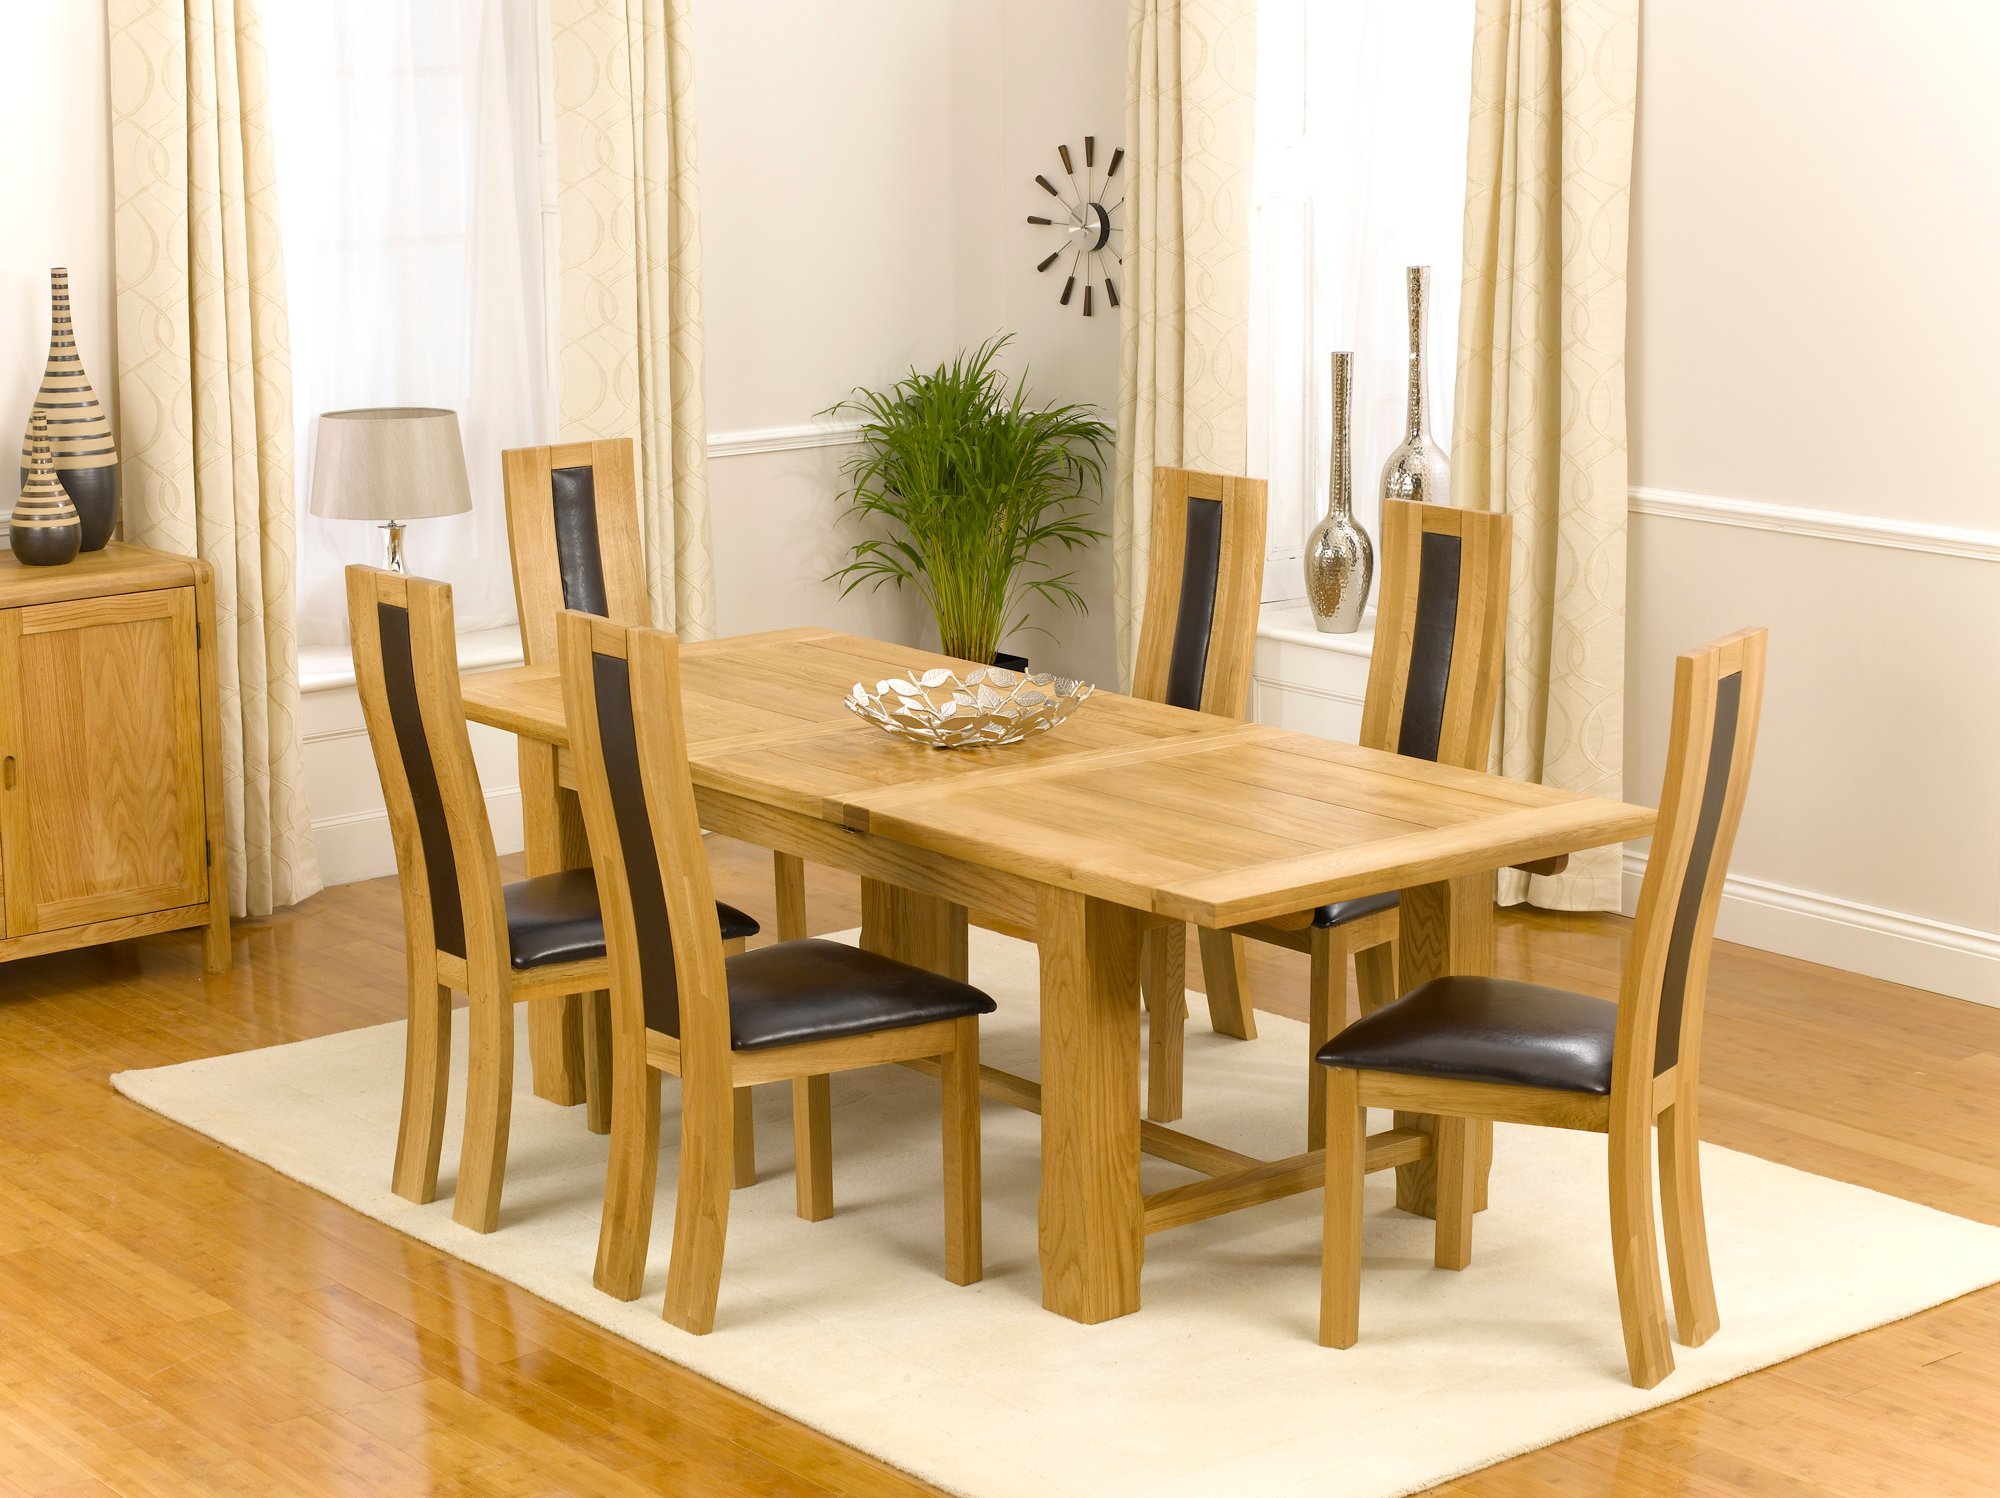 Farmhouse Extending Oak Dining Table With 6 Roma Chairs Buy Modern Wooden D